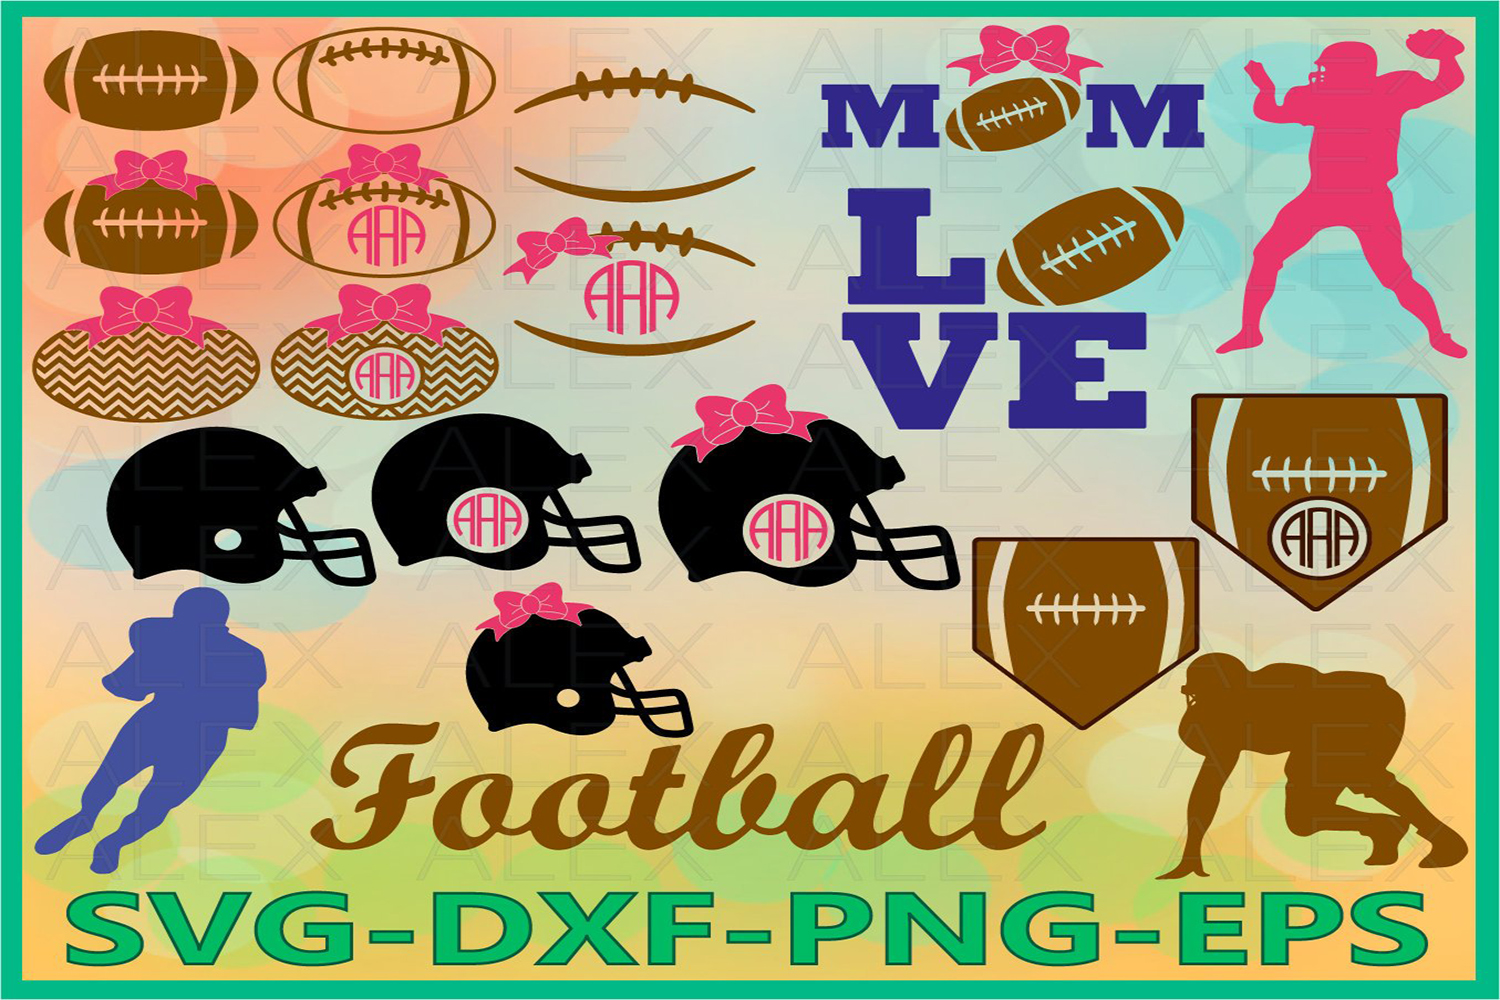 Football SVG, Football Laces Svg, Football Monogram Svg example image 1